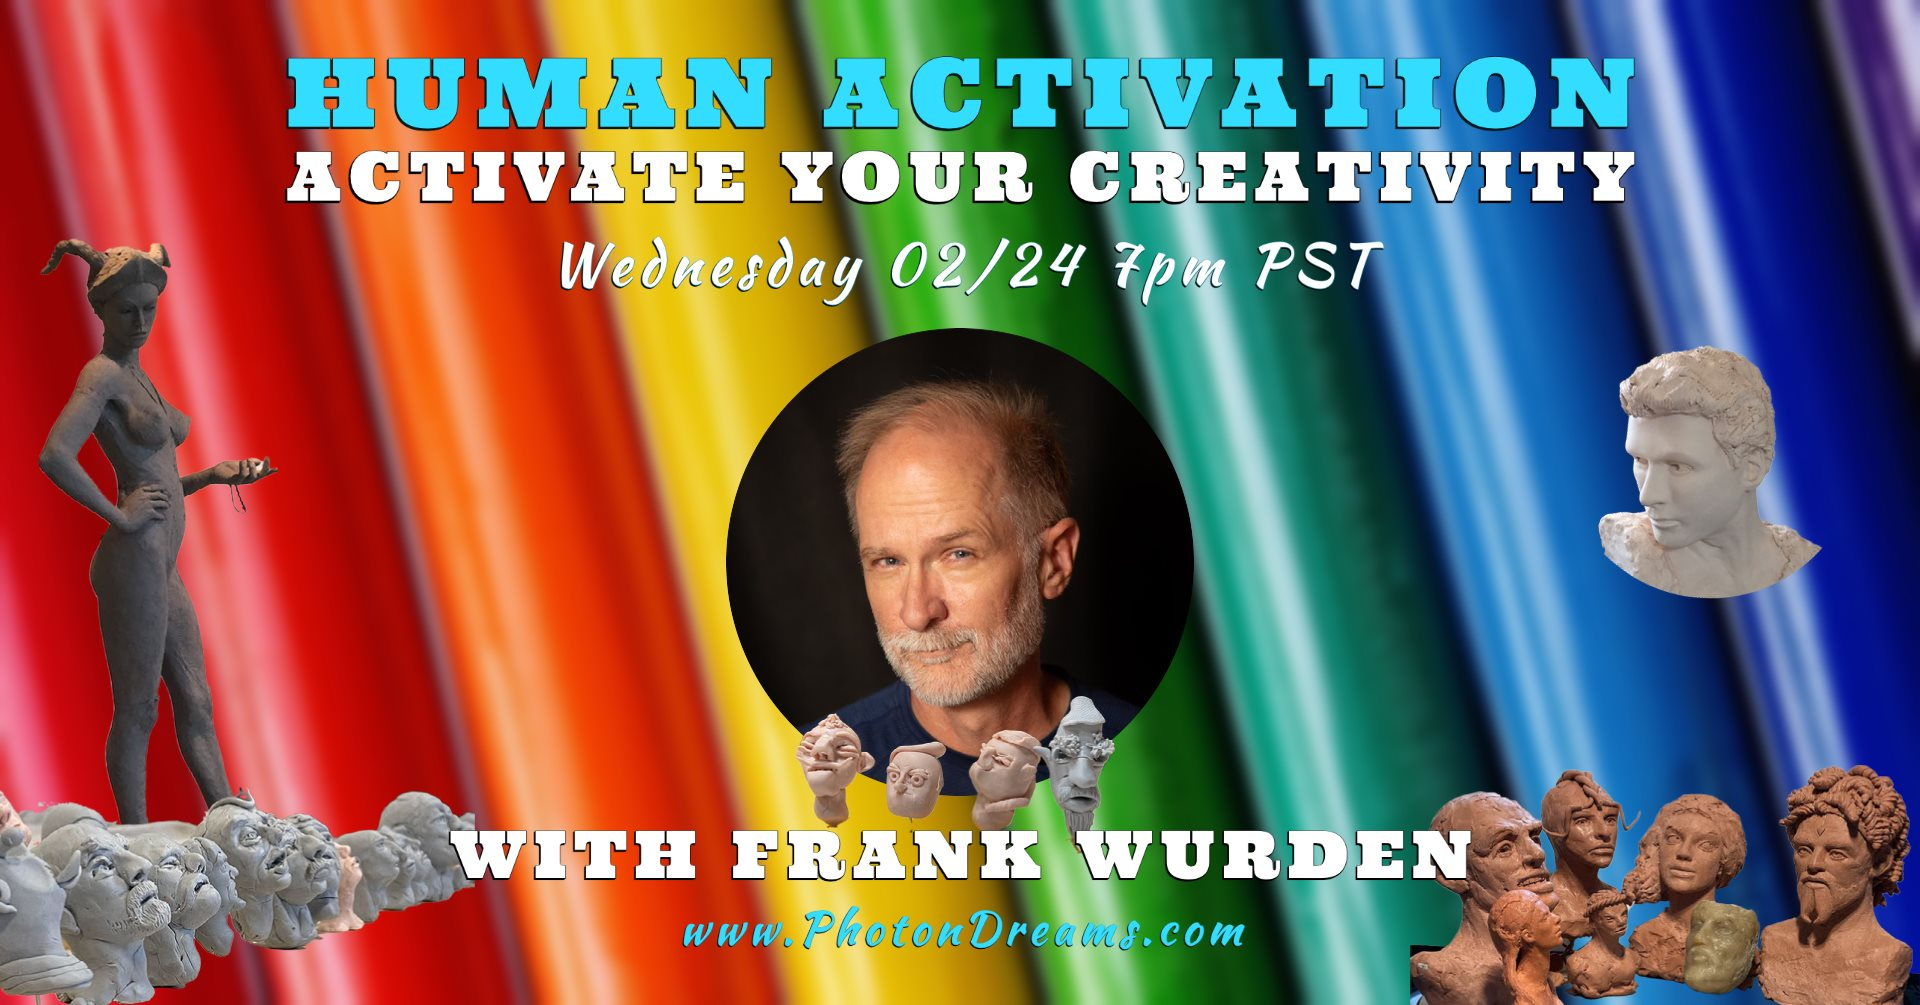 Activate Your Creativity - Sculpt with Frank